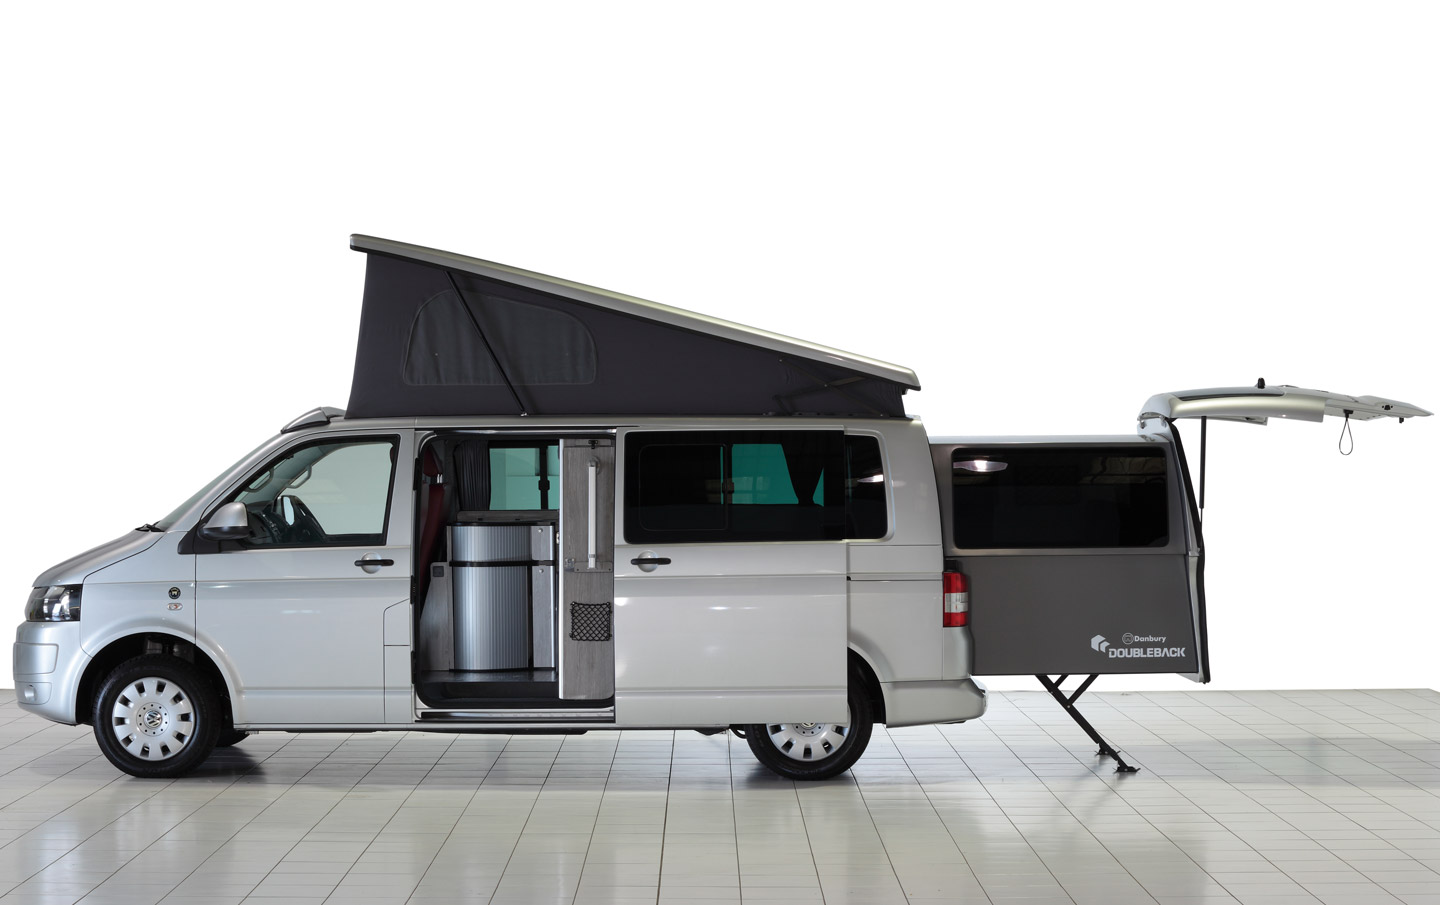 Imagine Travel Trailer >> Be The Super Hero Of The Campground With This Camper! - RVshare.com